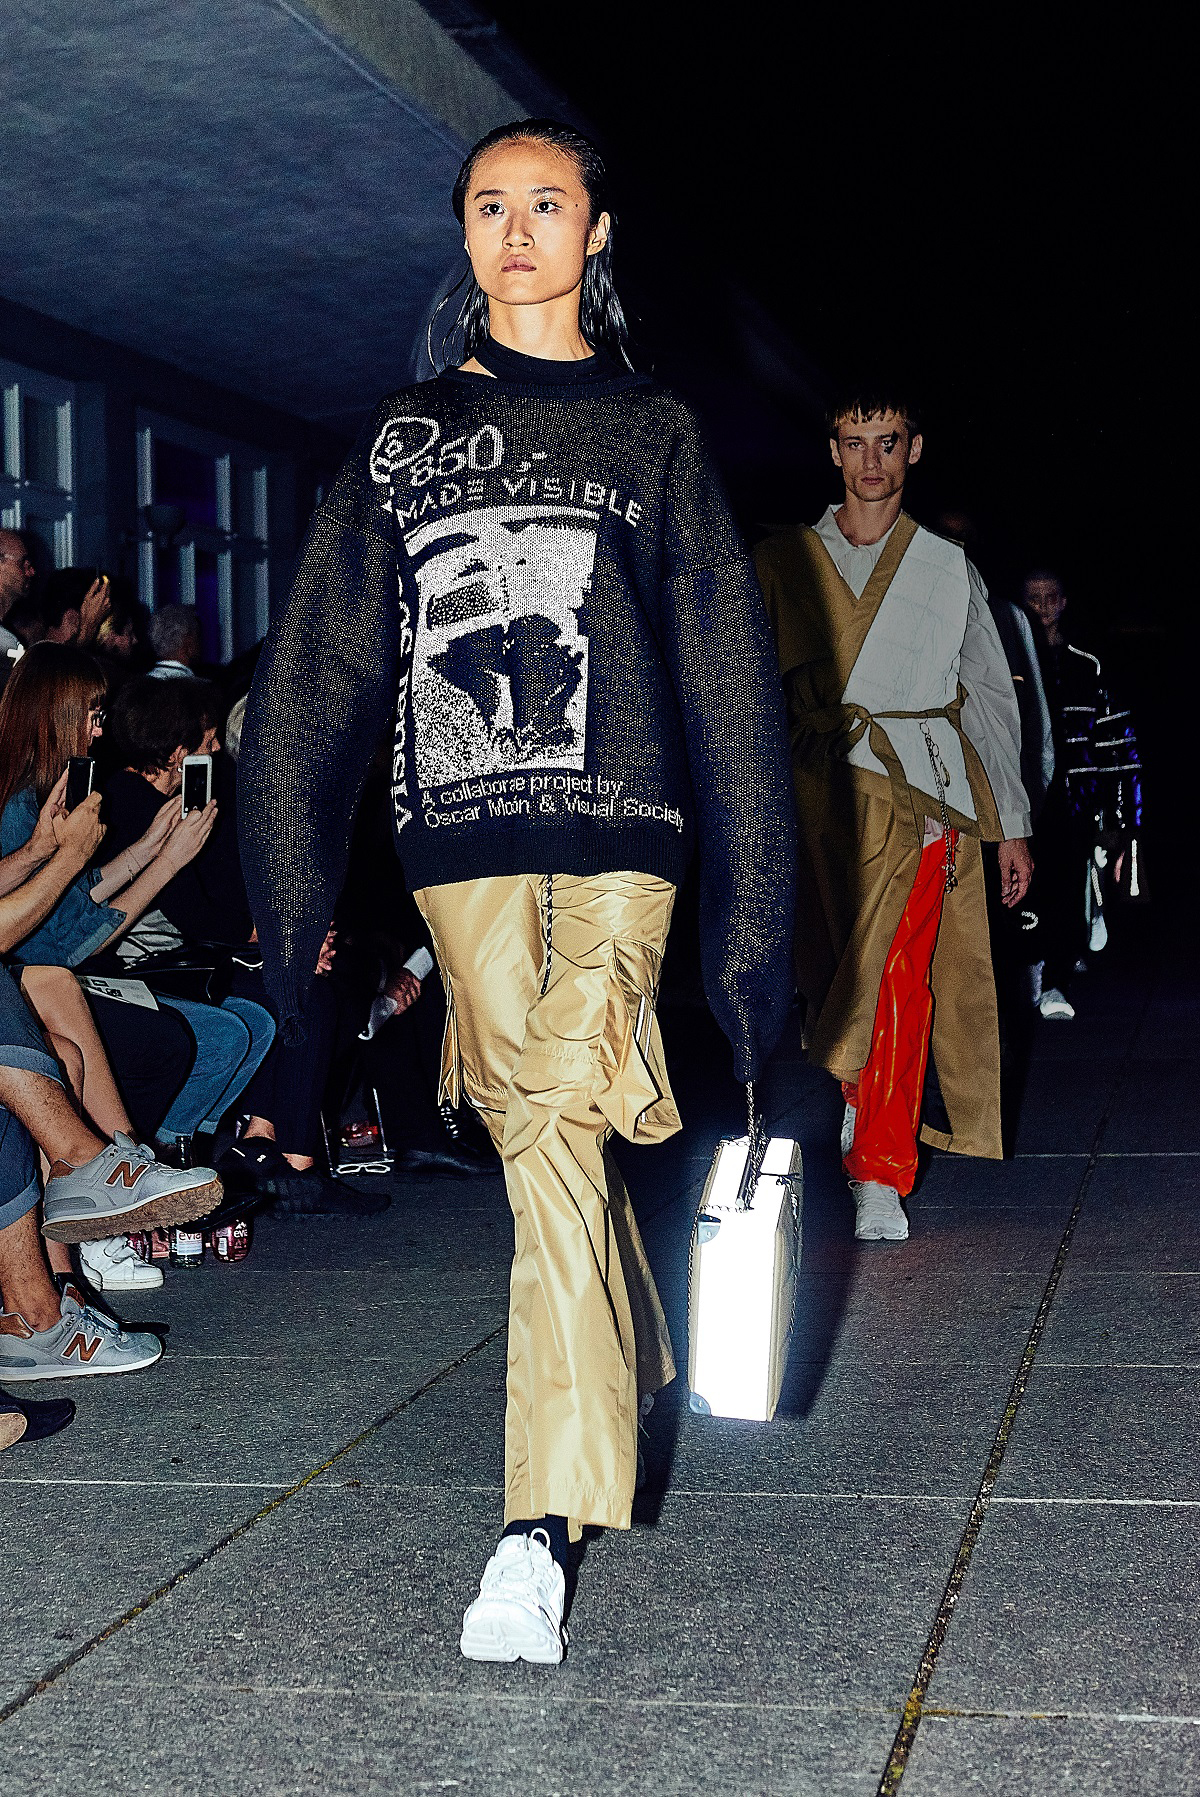 Show-Look-9-MADE-VISIBLE-Capsule-Collection-I-Foto-MADE-VISIBLE-Anja-Wurm